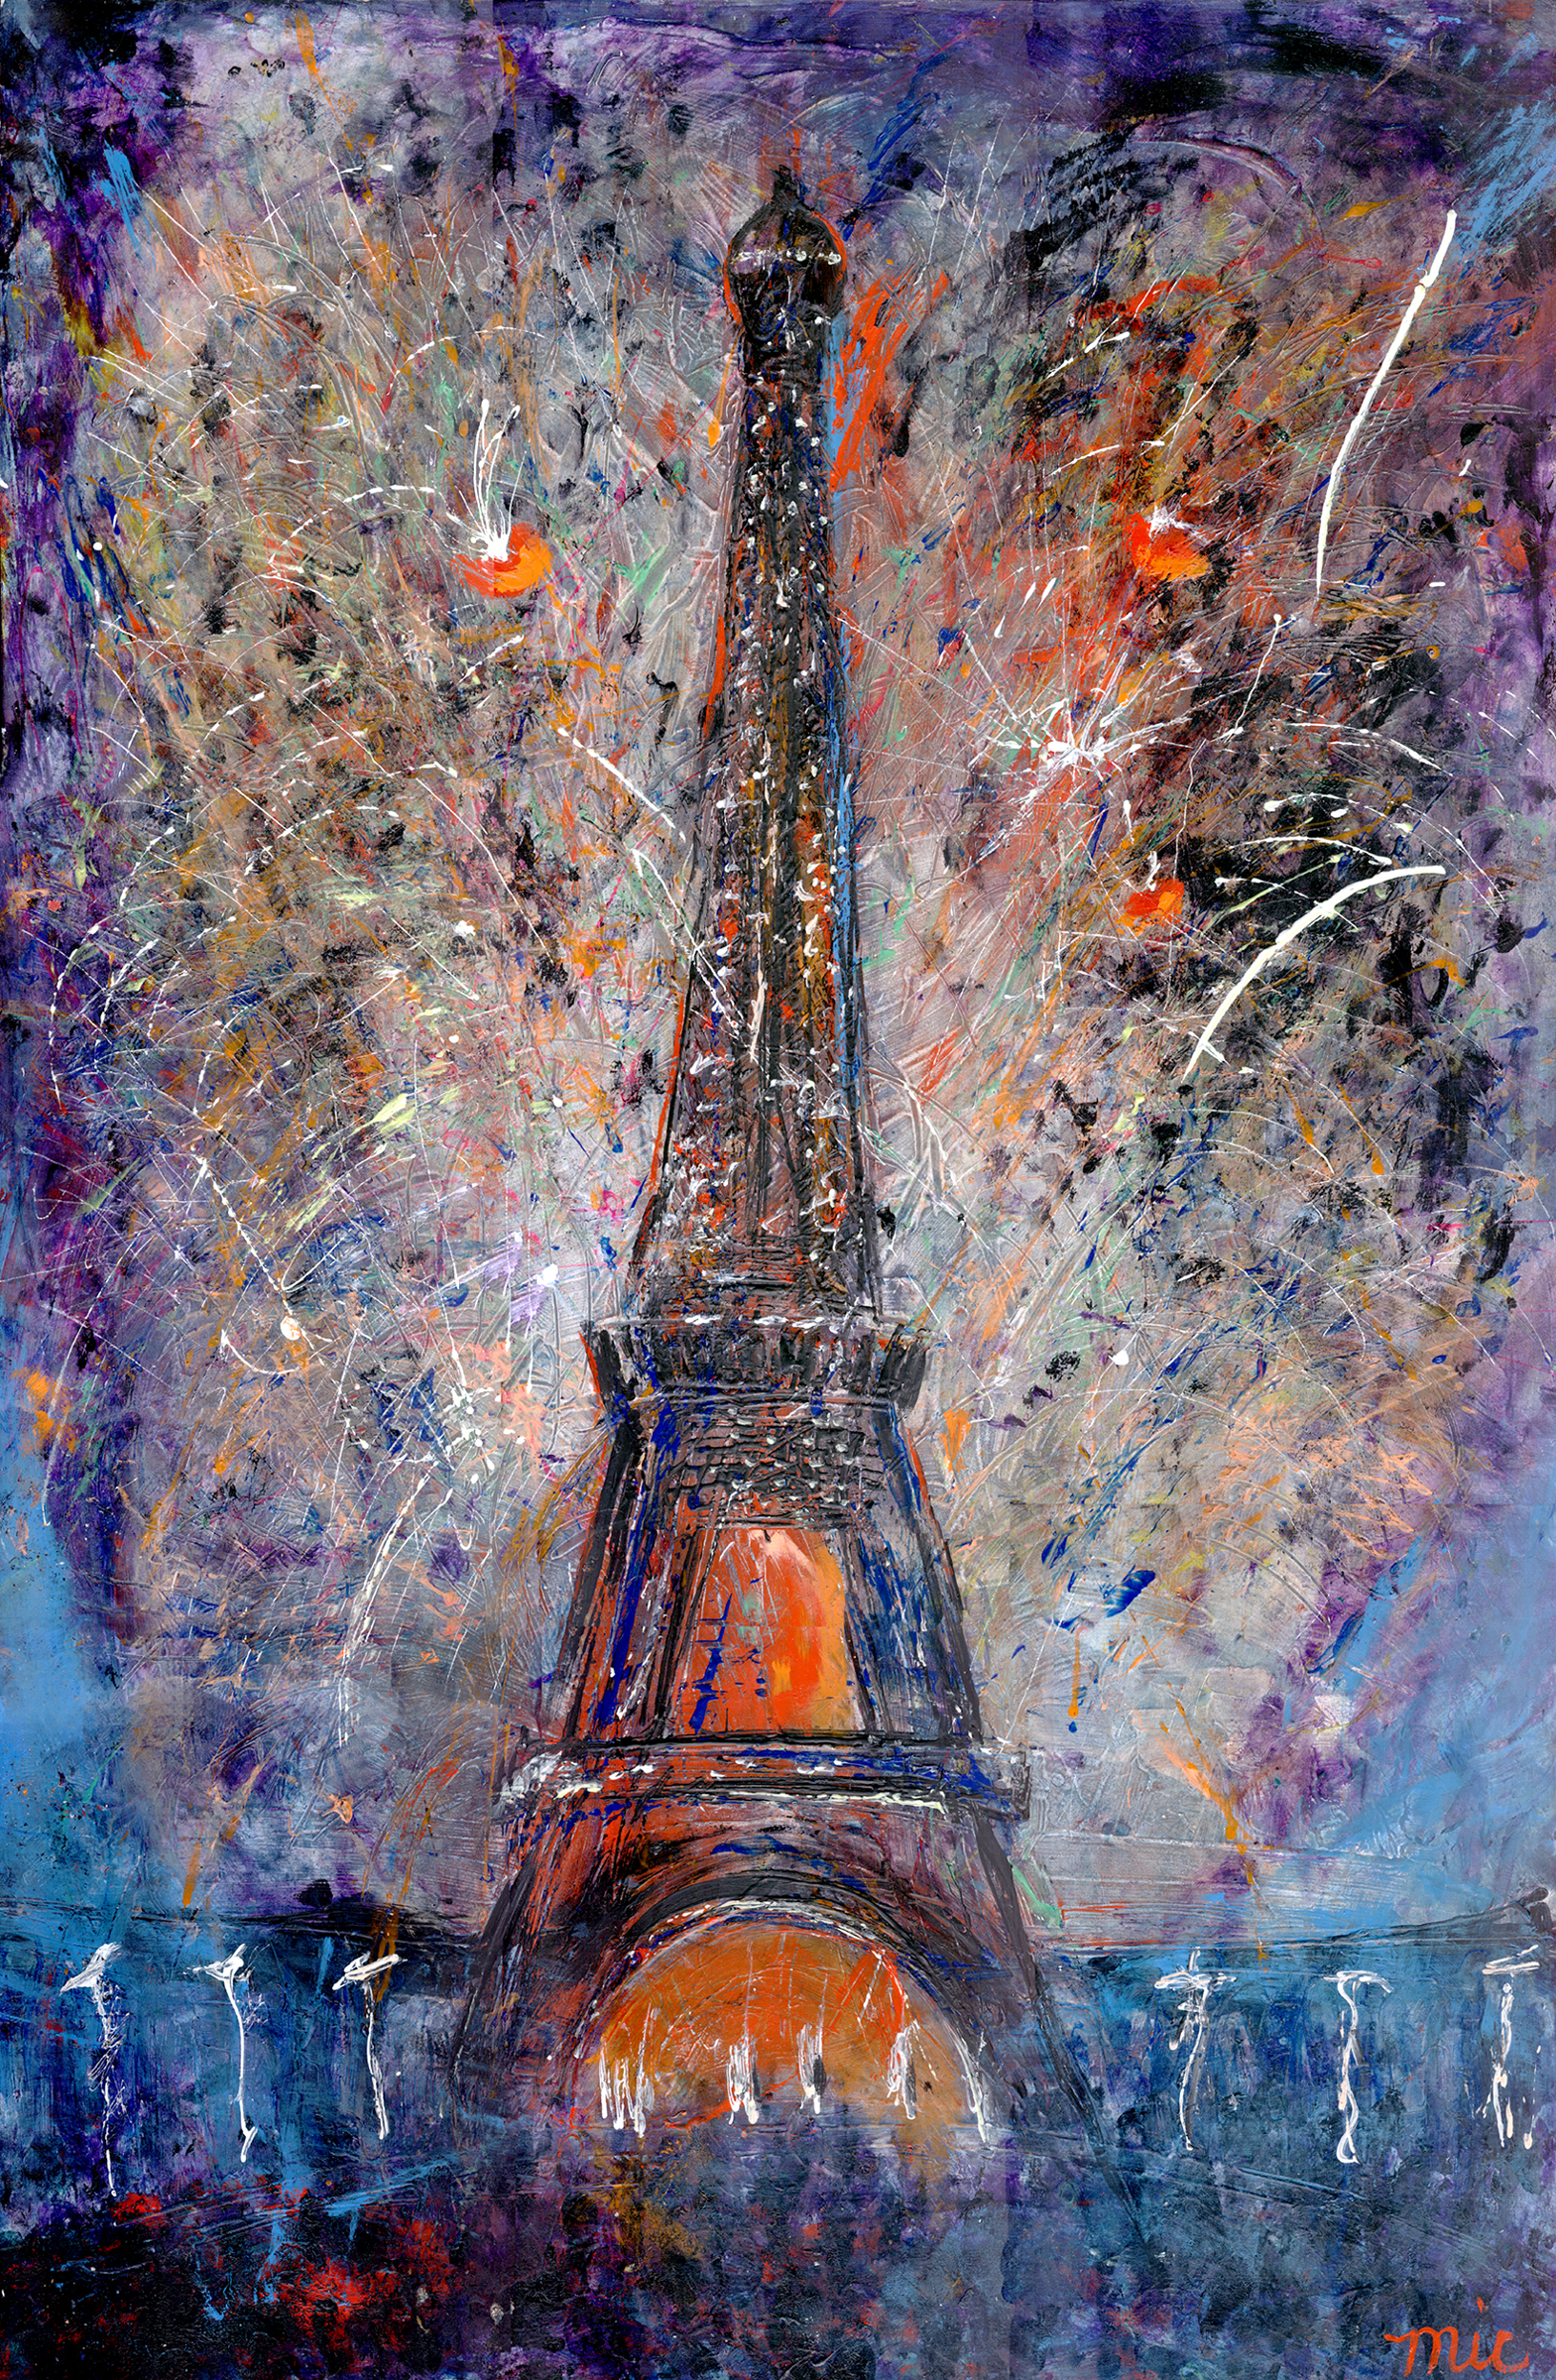 Bastile Day at the Eiffel Tower - Private Collection Jodi and Kerry SmithGiclee Limited Edition and canvas prints are available. Please visit the prints gallery.